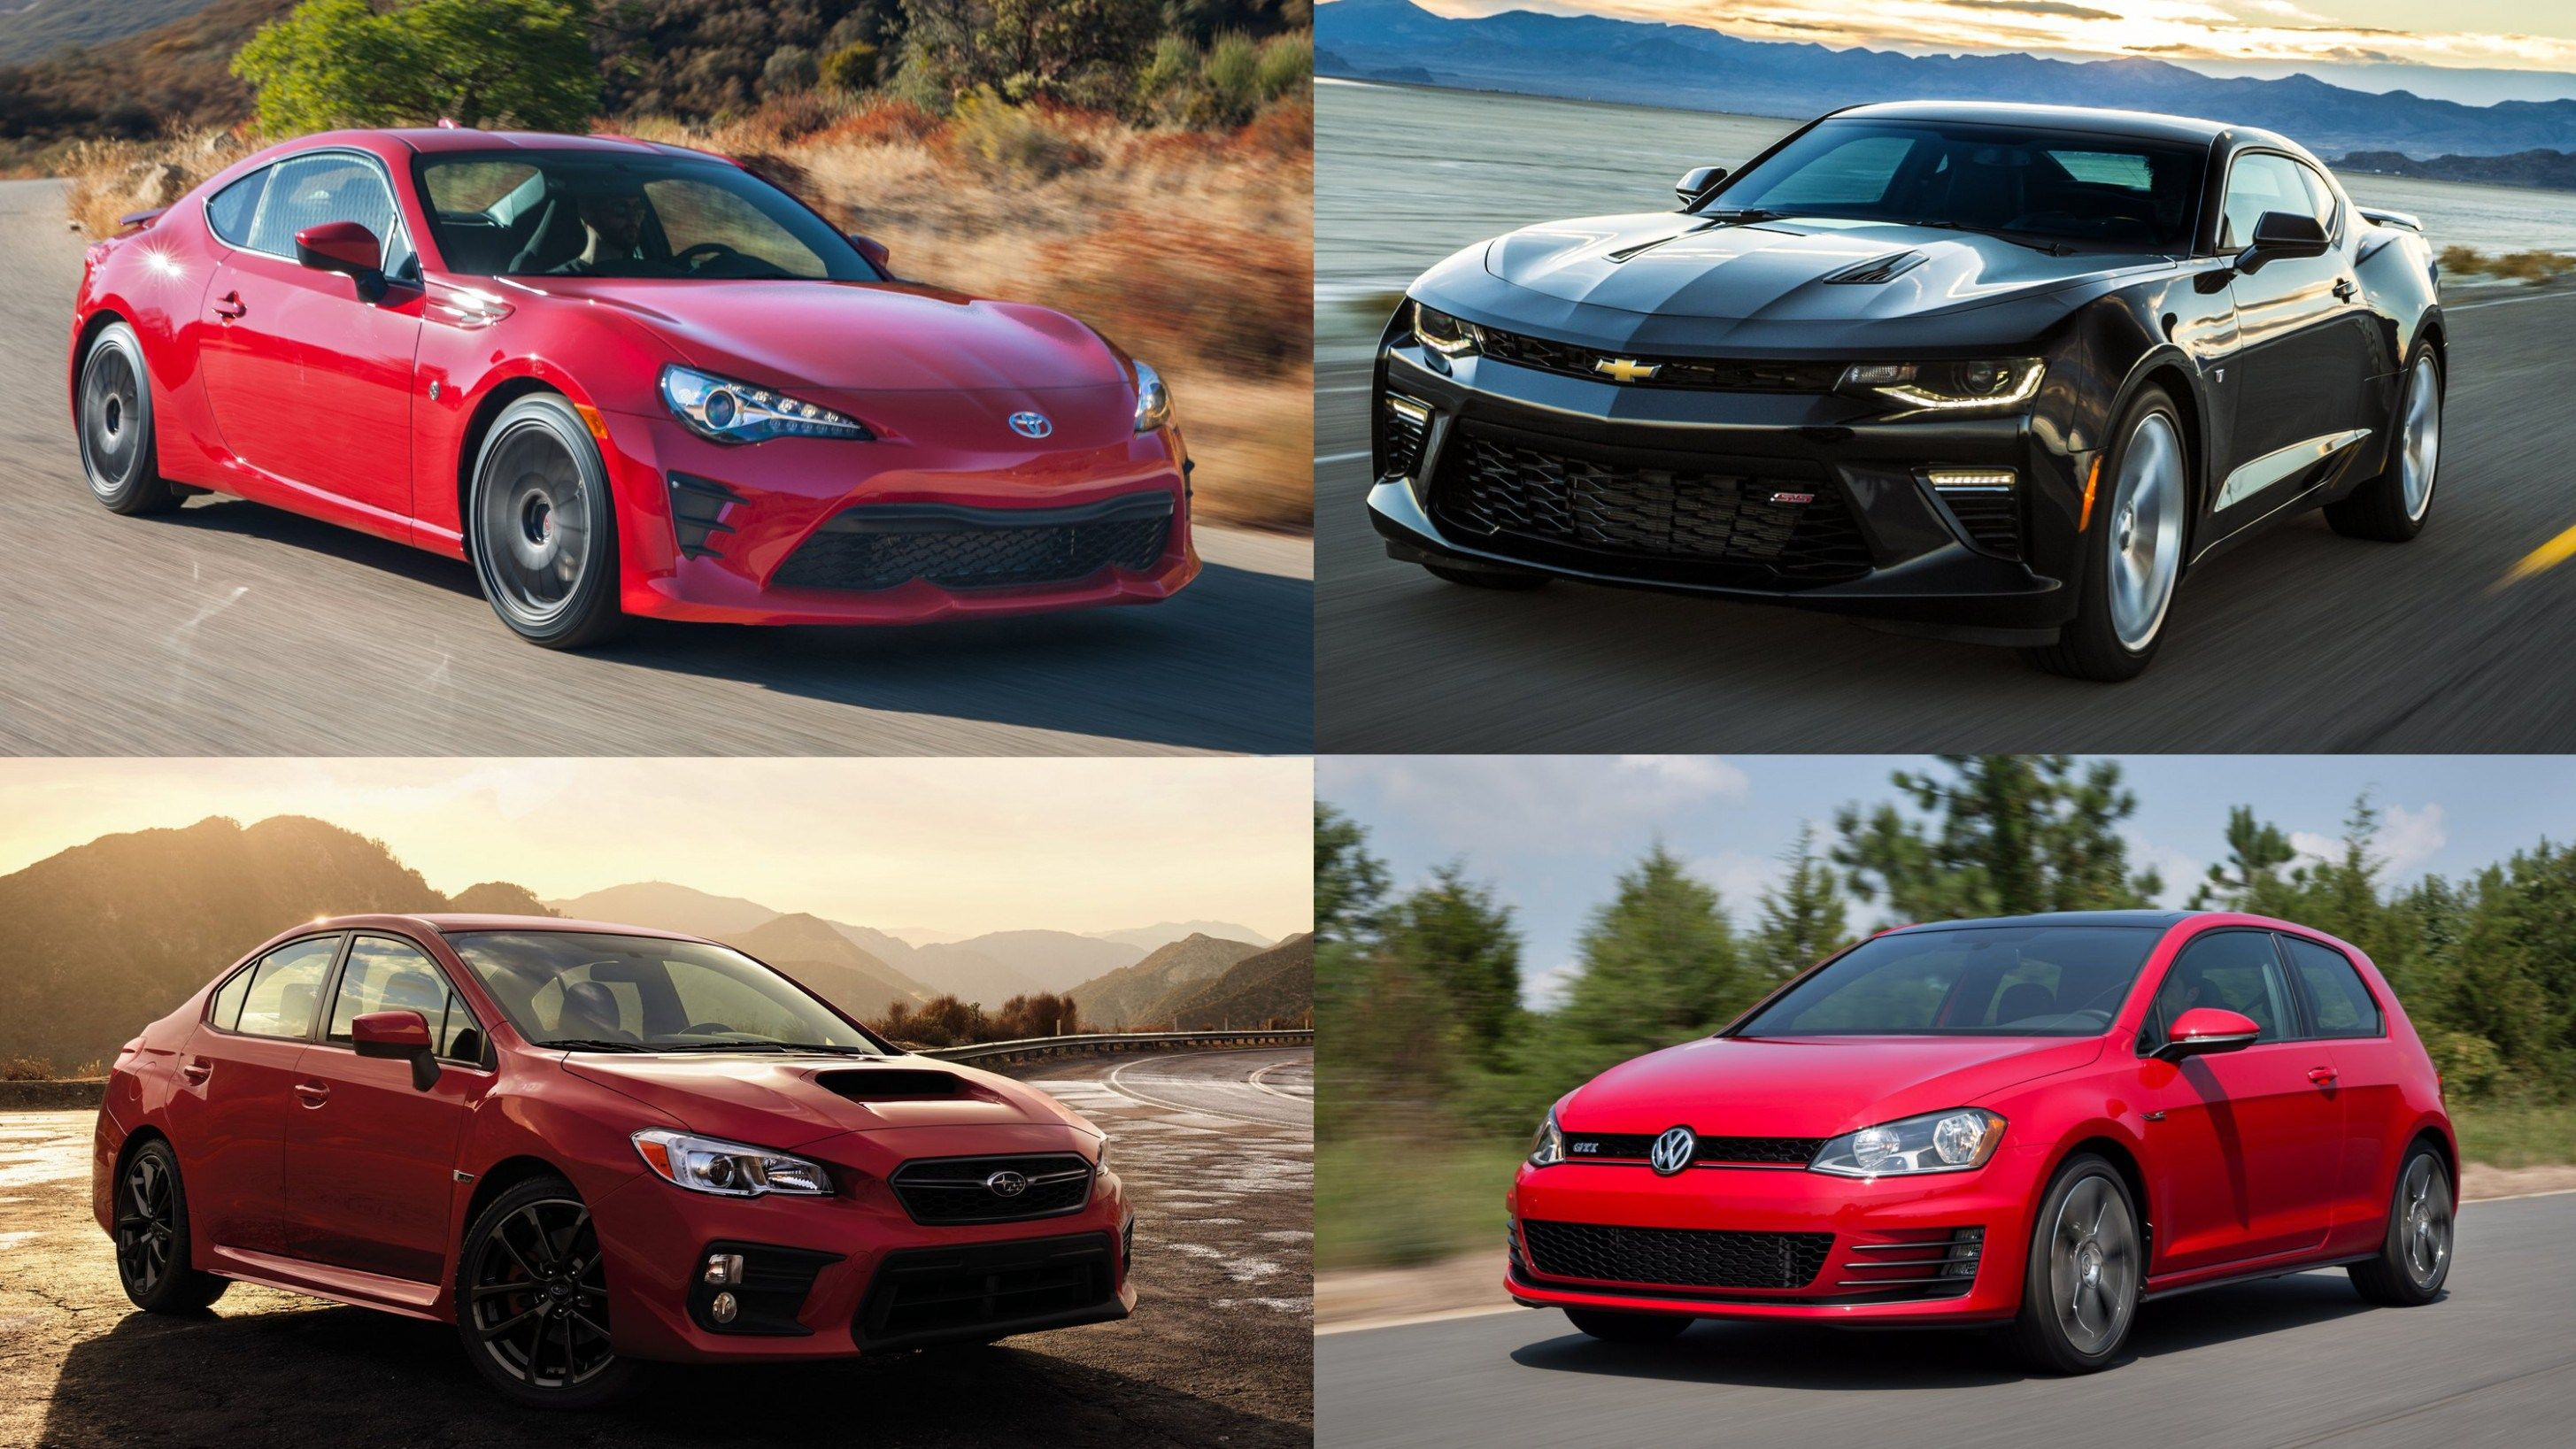 hight resolution of whats so trendy about affordable sporty cars that everyone went crazy over it affordable